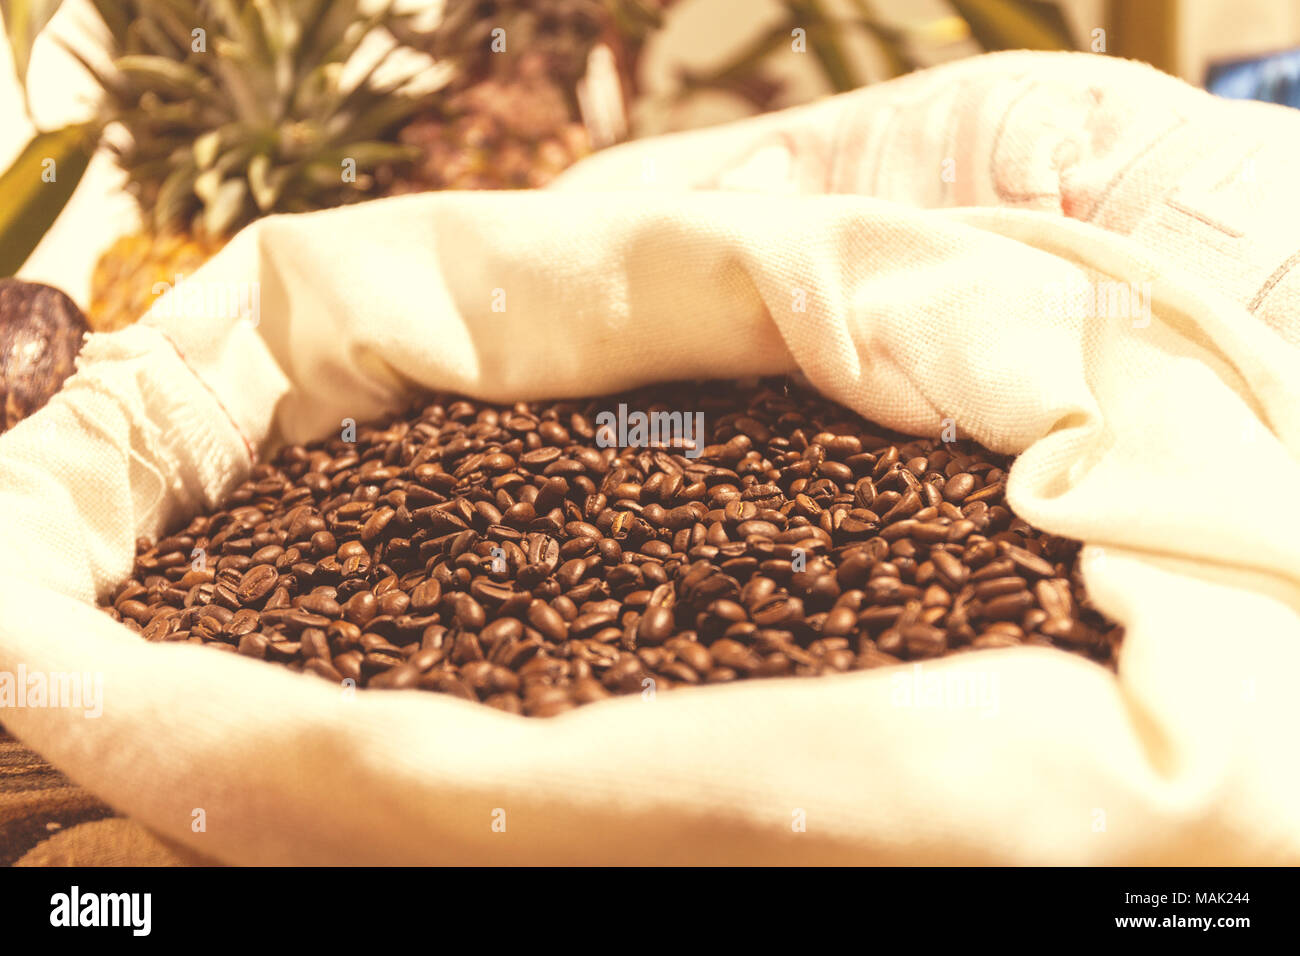 bag of roasted coffee beans on the market in South America. Vintage Toning Effect - Stock Image